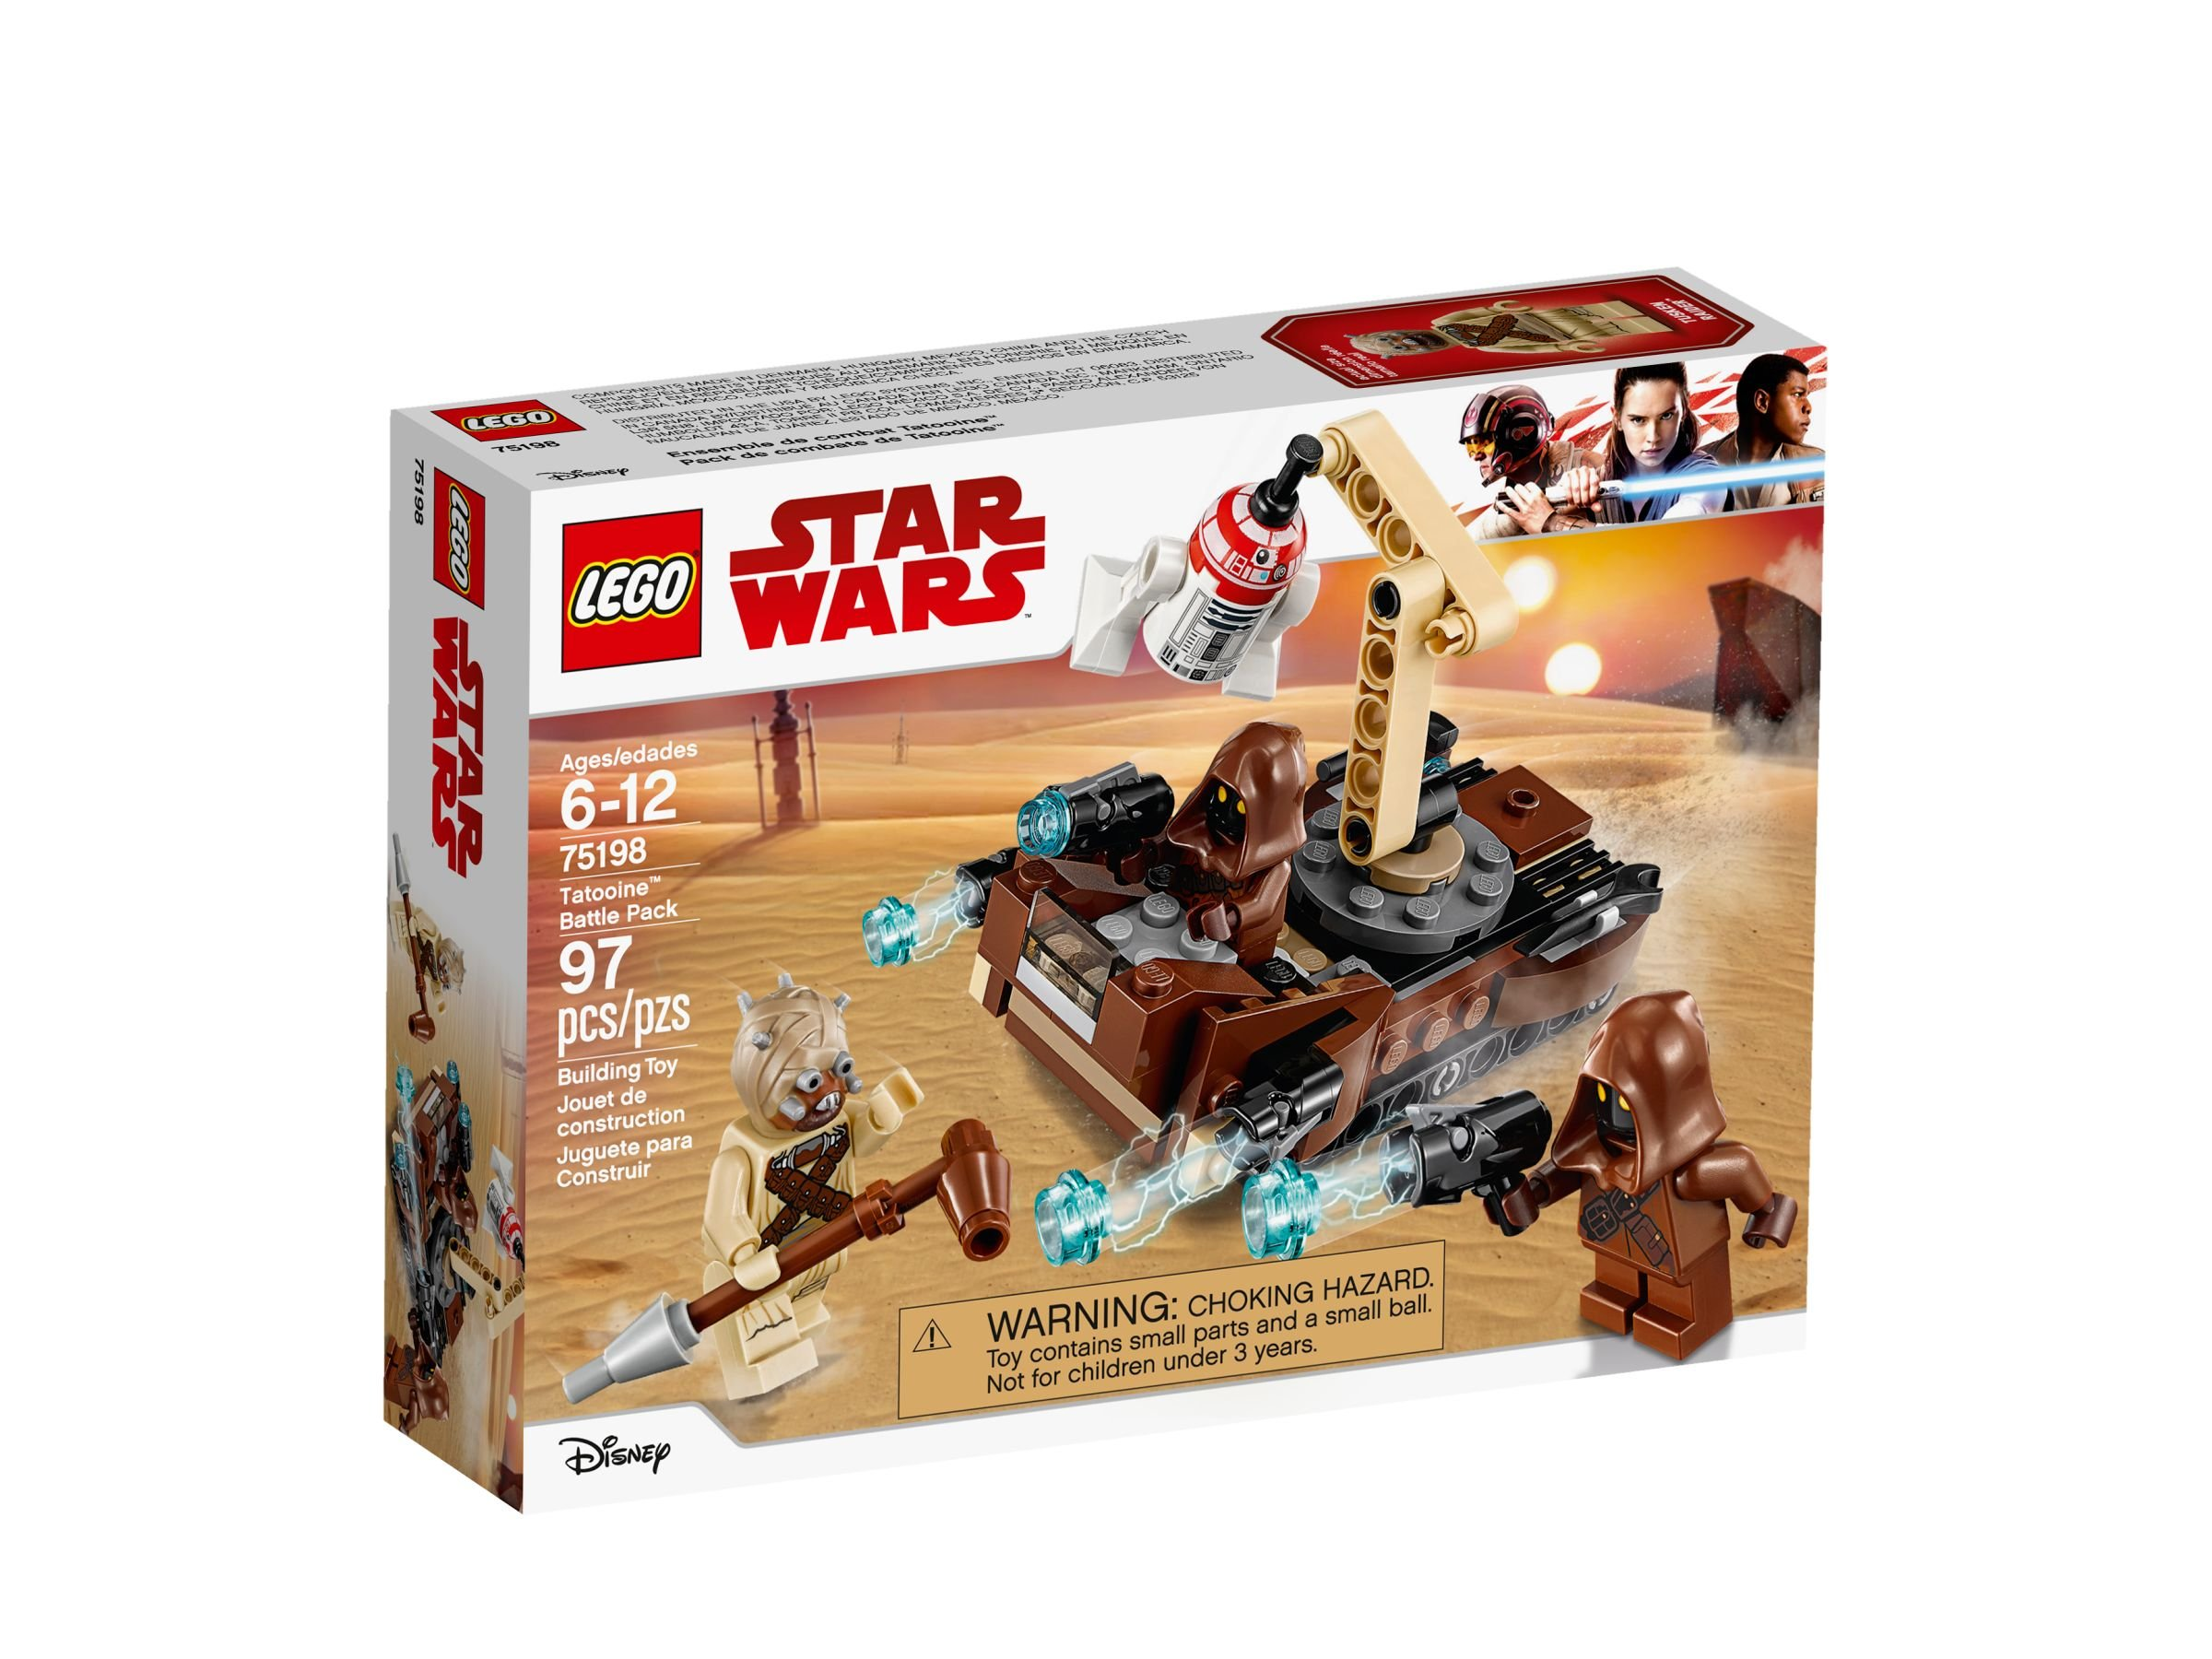 LEGO Star Wars 75198 Tatooine Battle Pack LEGO_75198_alt1.jpg